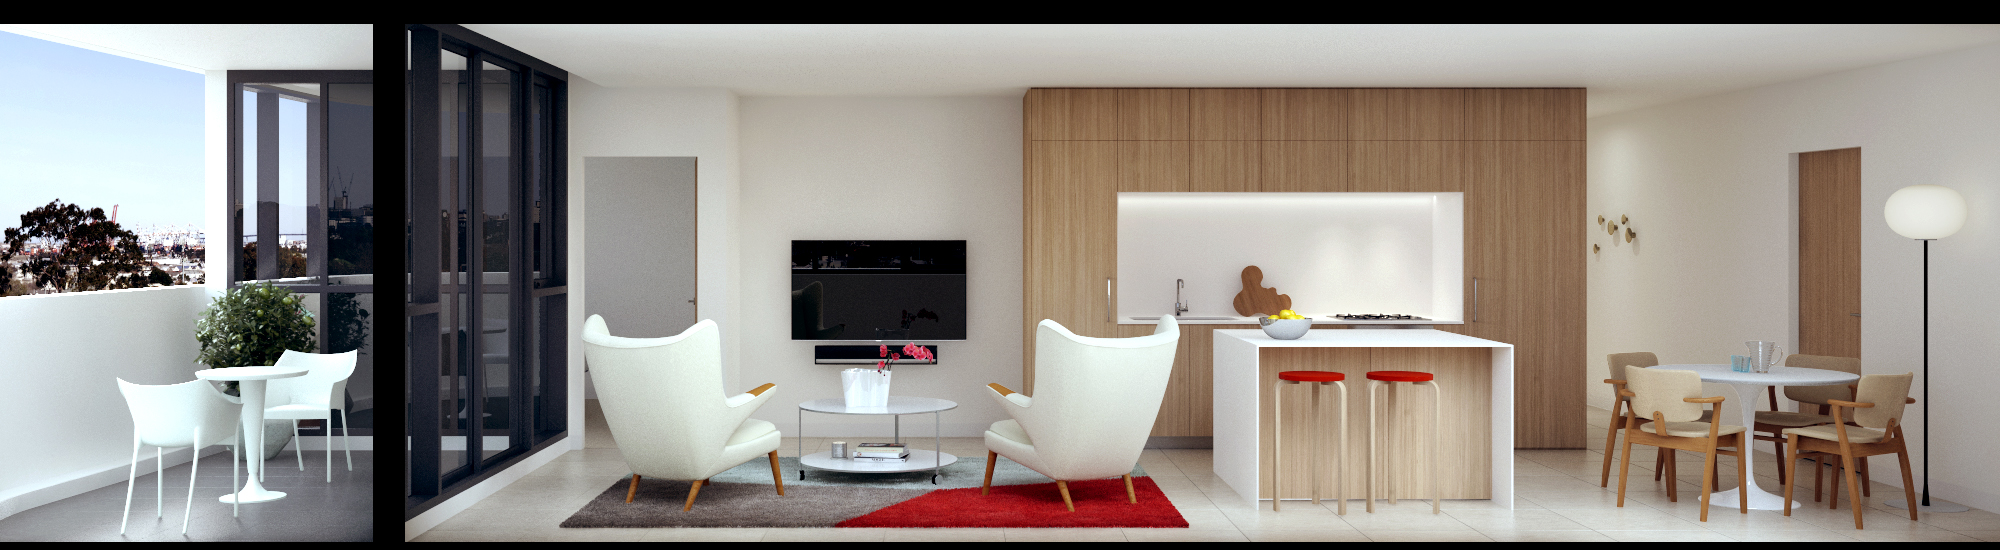 INT_LVL10_APT08_sectional_preview02.jpg